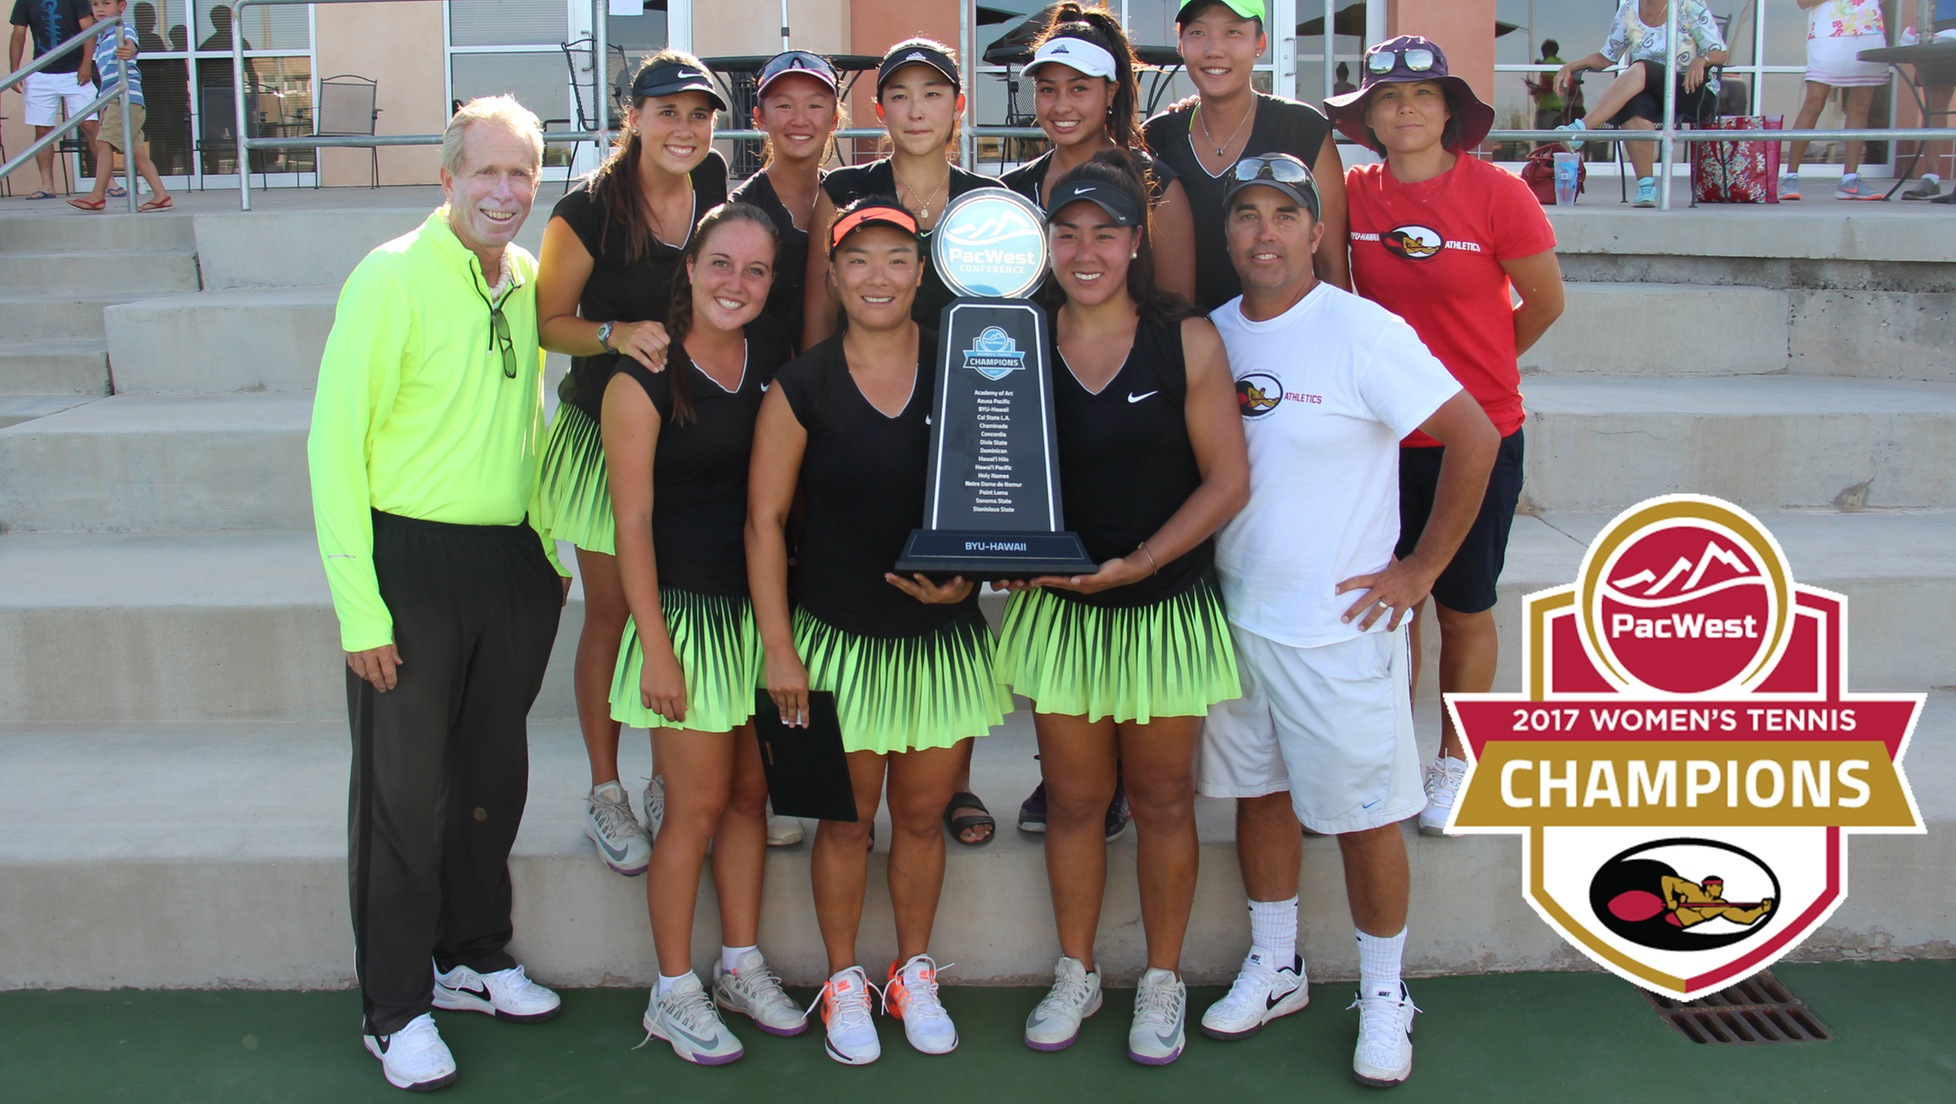 Seasiders win 11th consecutive PacWest Championship